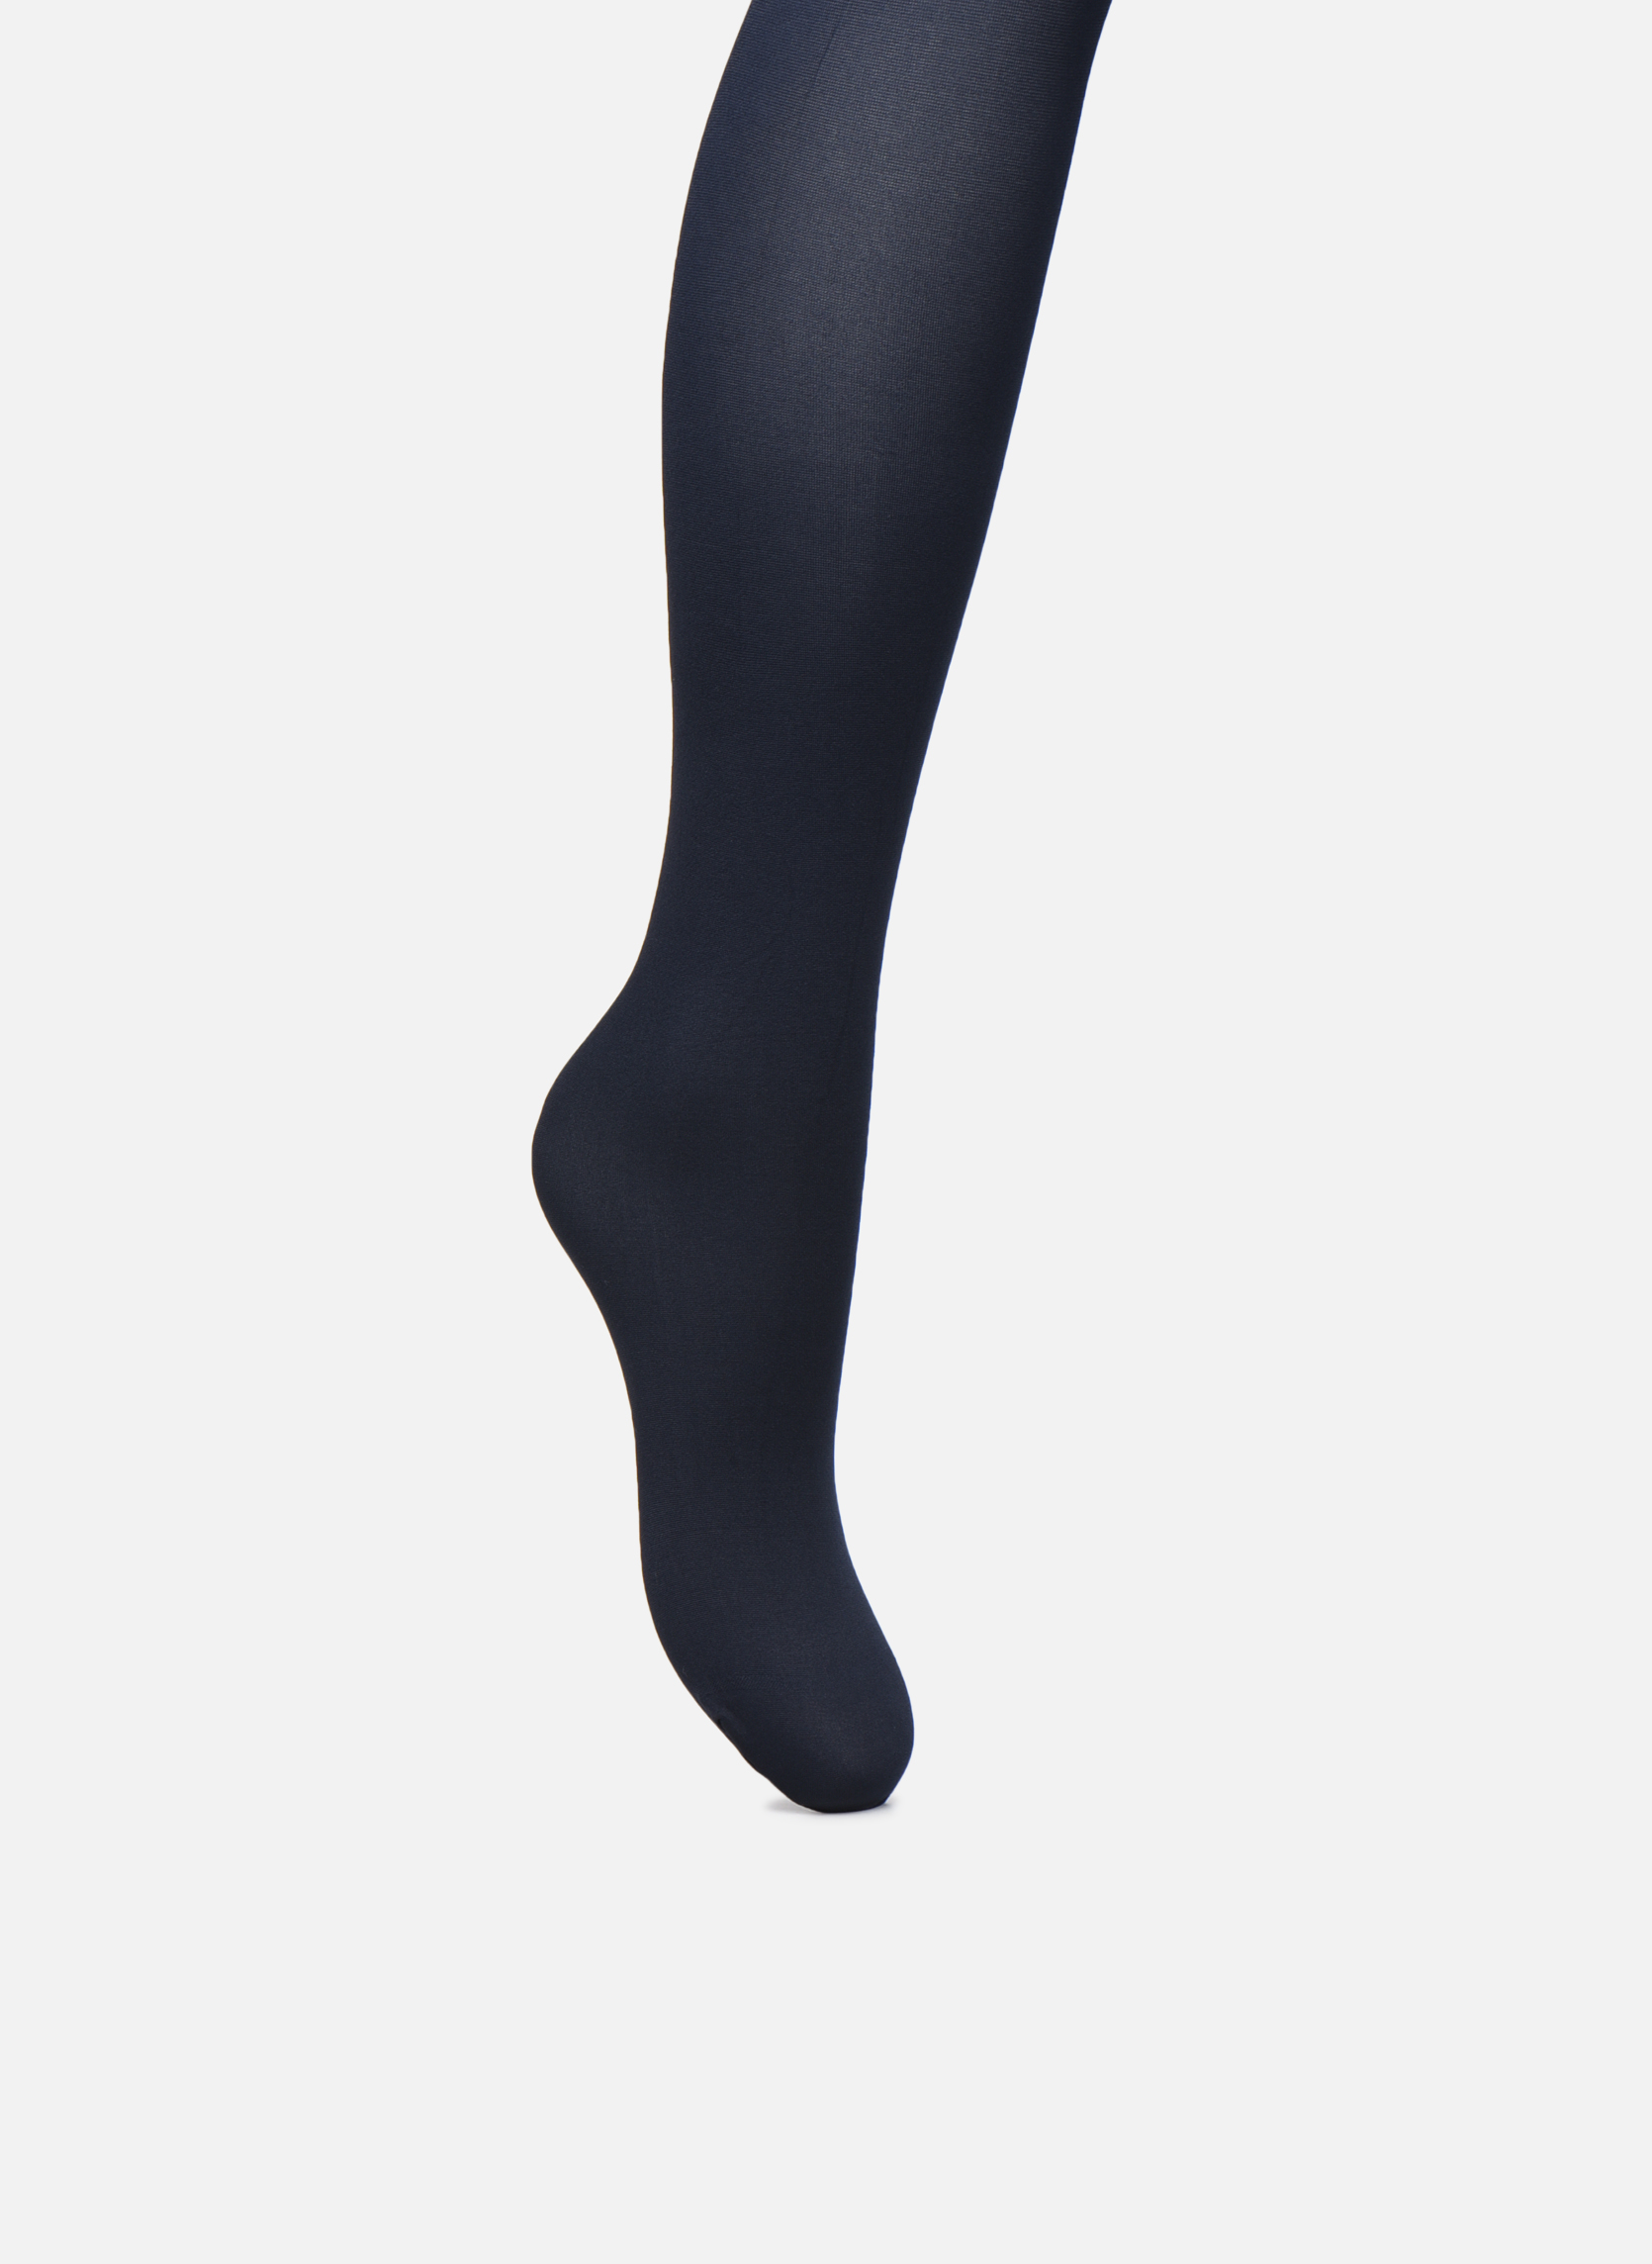 Socks & tights Accessories Tights soft touch